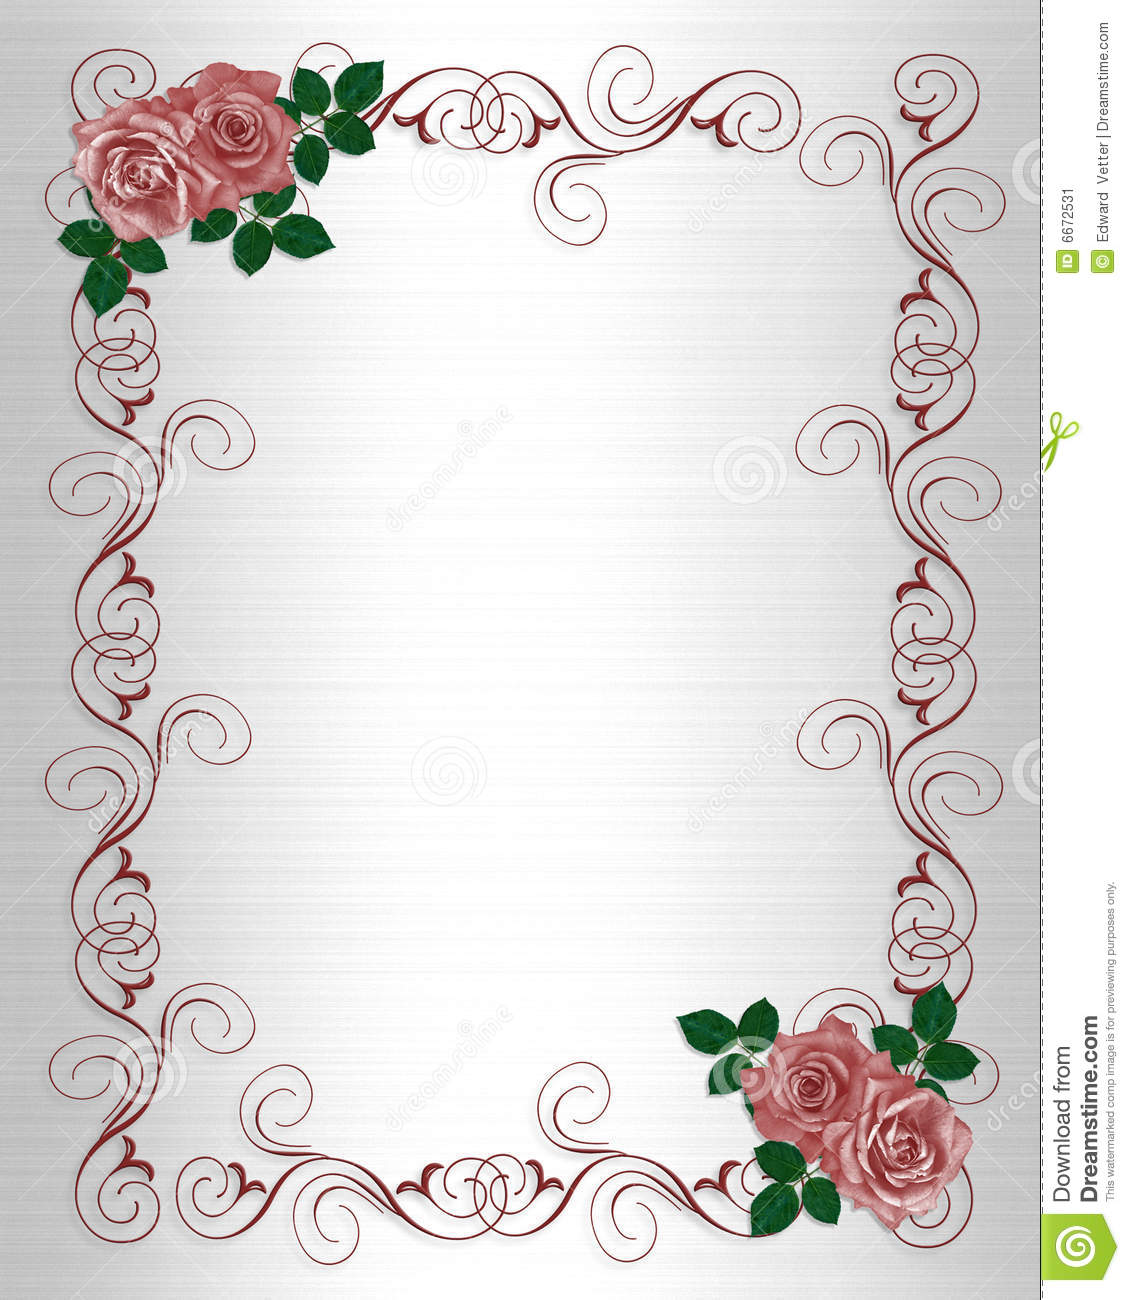 Red Roses Illustration Composition For Birthday Party Wedding Invitation Background Card Or Stationery With Copy Space